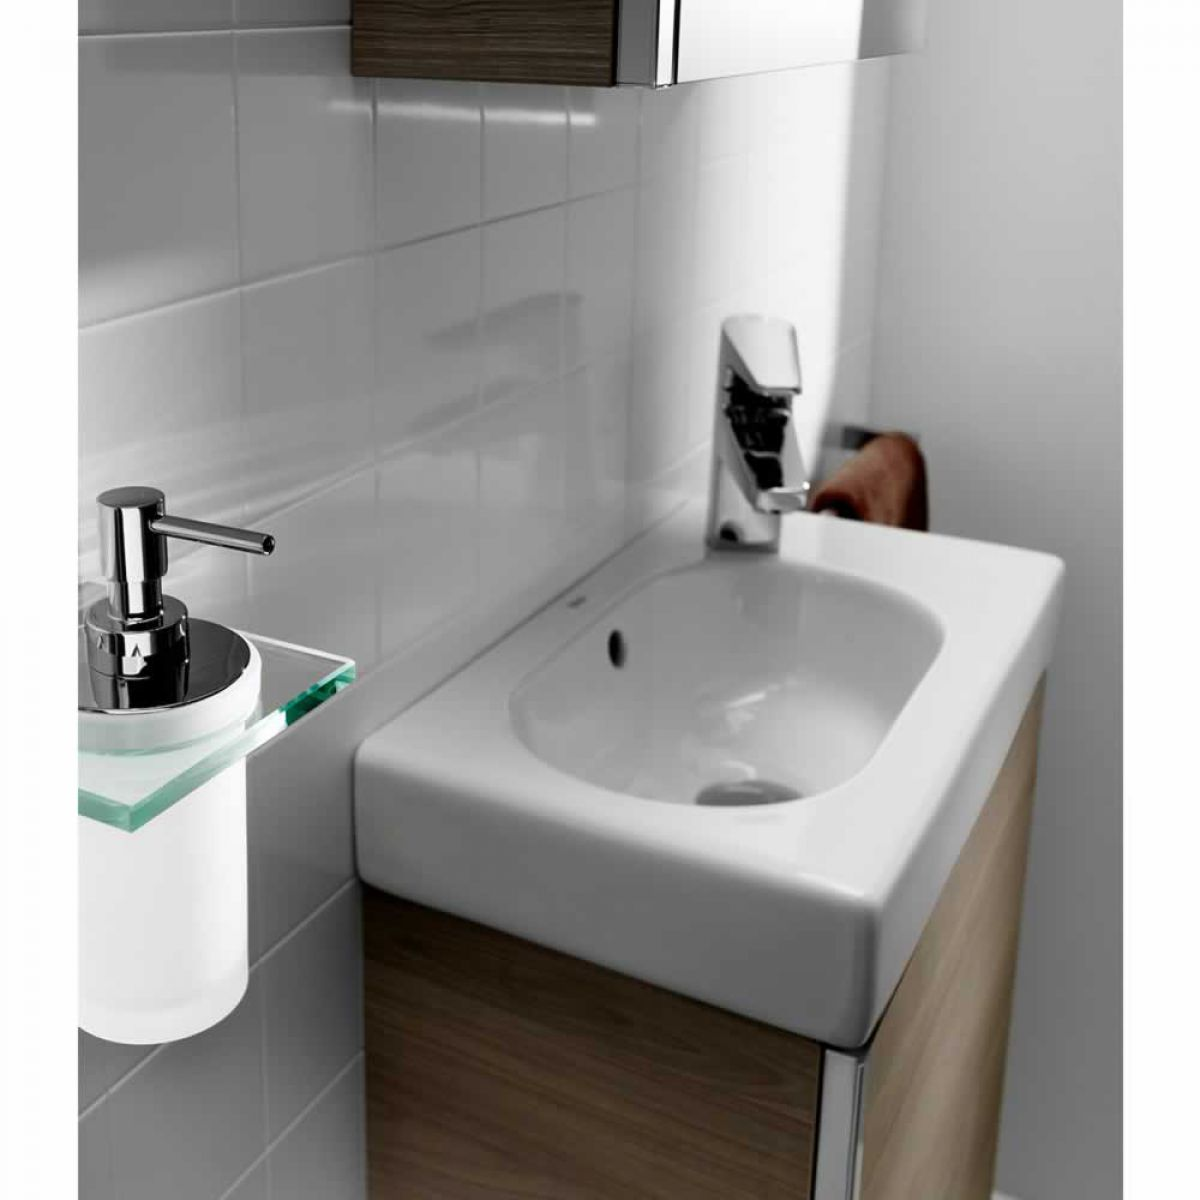 roca bathroom cabinets roca mini vanity unit with mirrored cabinet uk bathrooms 25596